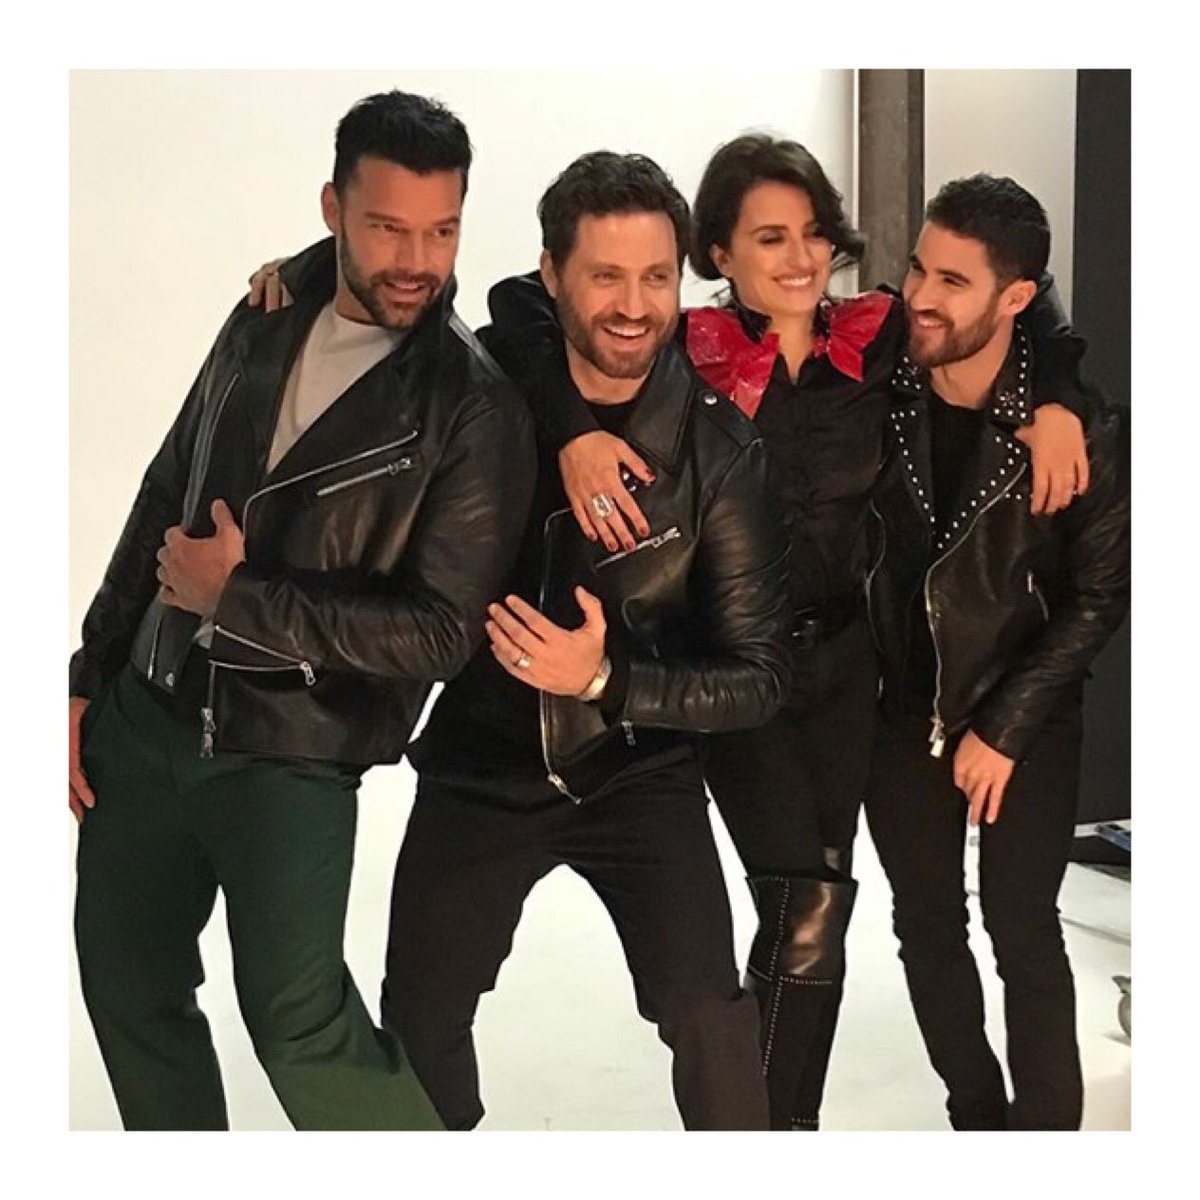 #TB @edgarramirez25 Photographed by #robertascroft for #emmymagazine  with the cast of @ACSFX #ACSVersace [Photo shared by #thecooljoey Instagram account thanks for shared]